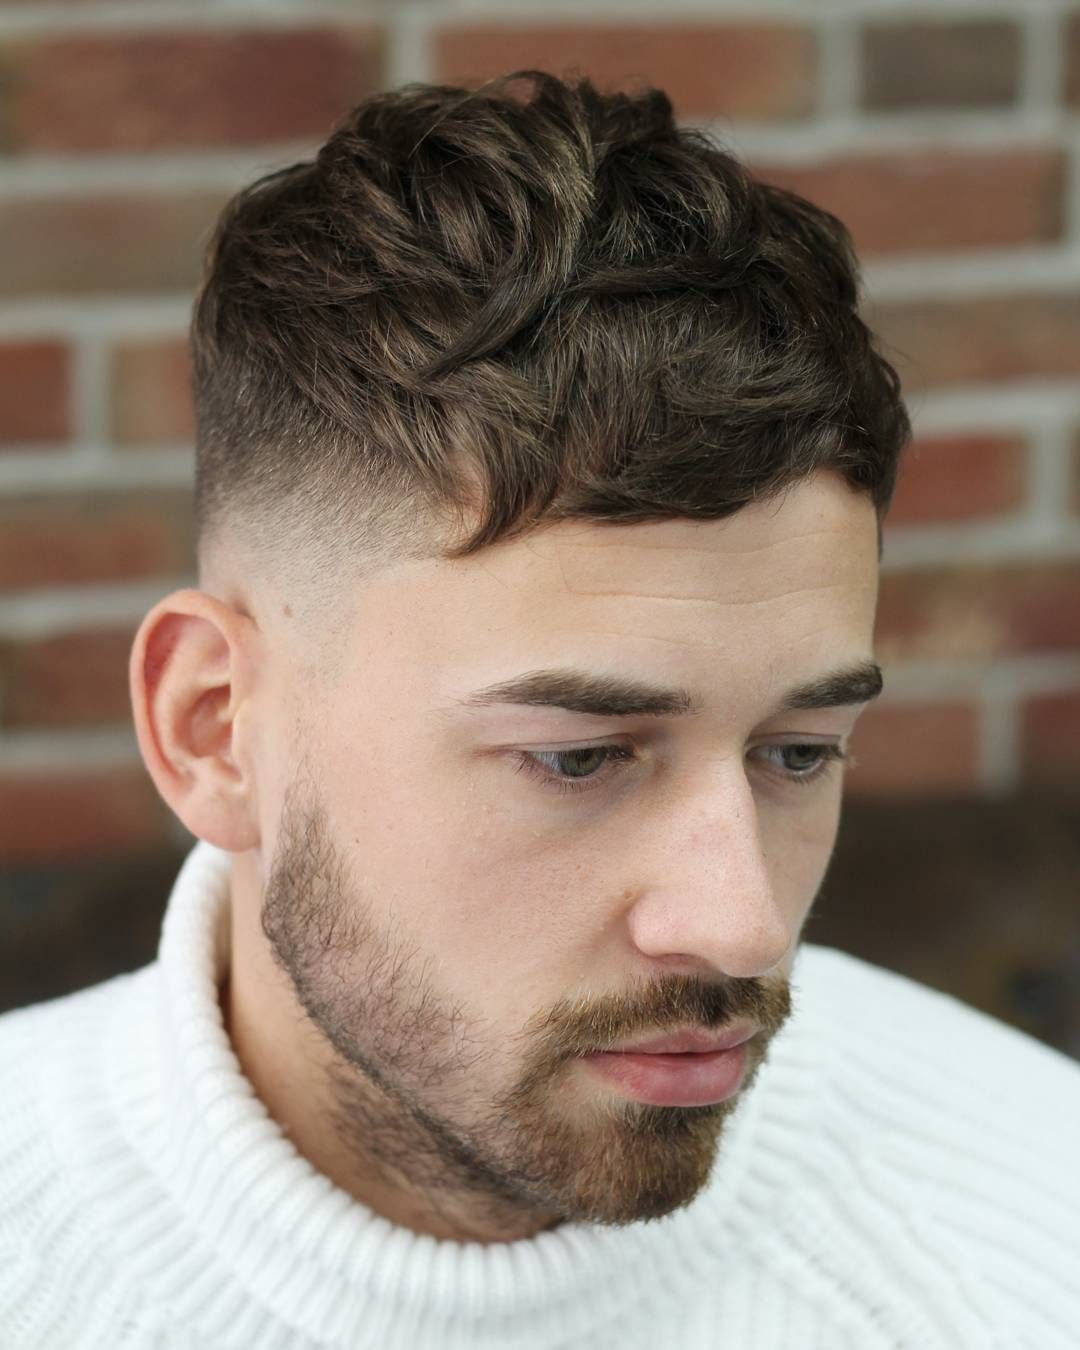 Haircut for small face men updated january   for most men short haircuts and short